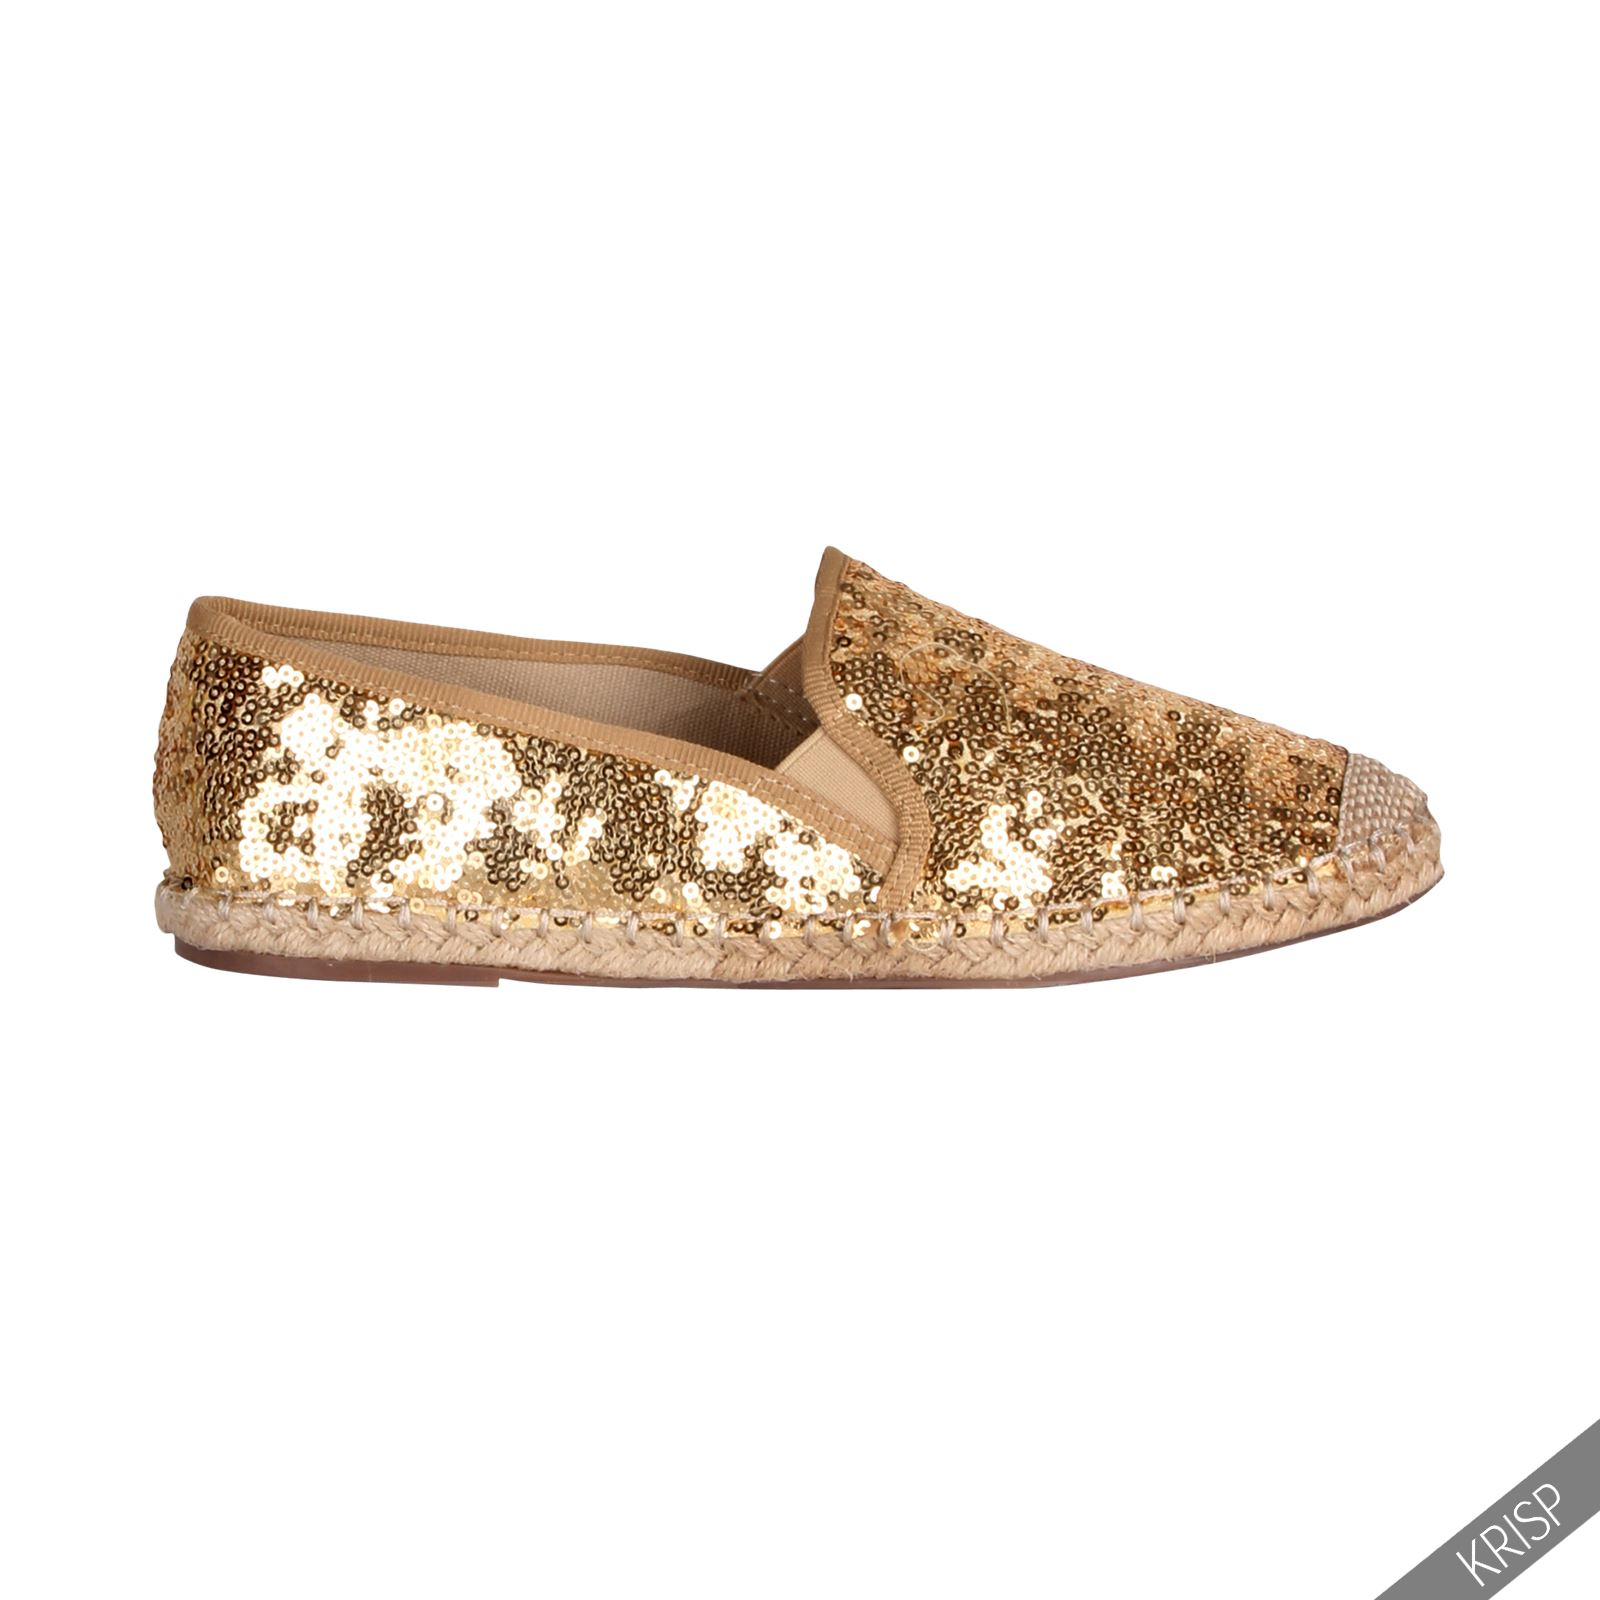 womens glitter lace espadrilles shoes holiday pumps casual comfort loafers size ebay. Black Bedroom Furniture Sets. Home Design Ideas